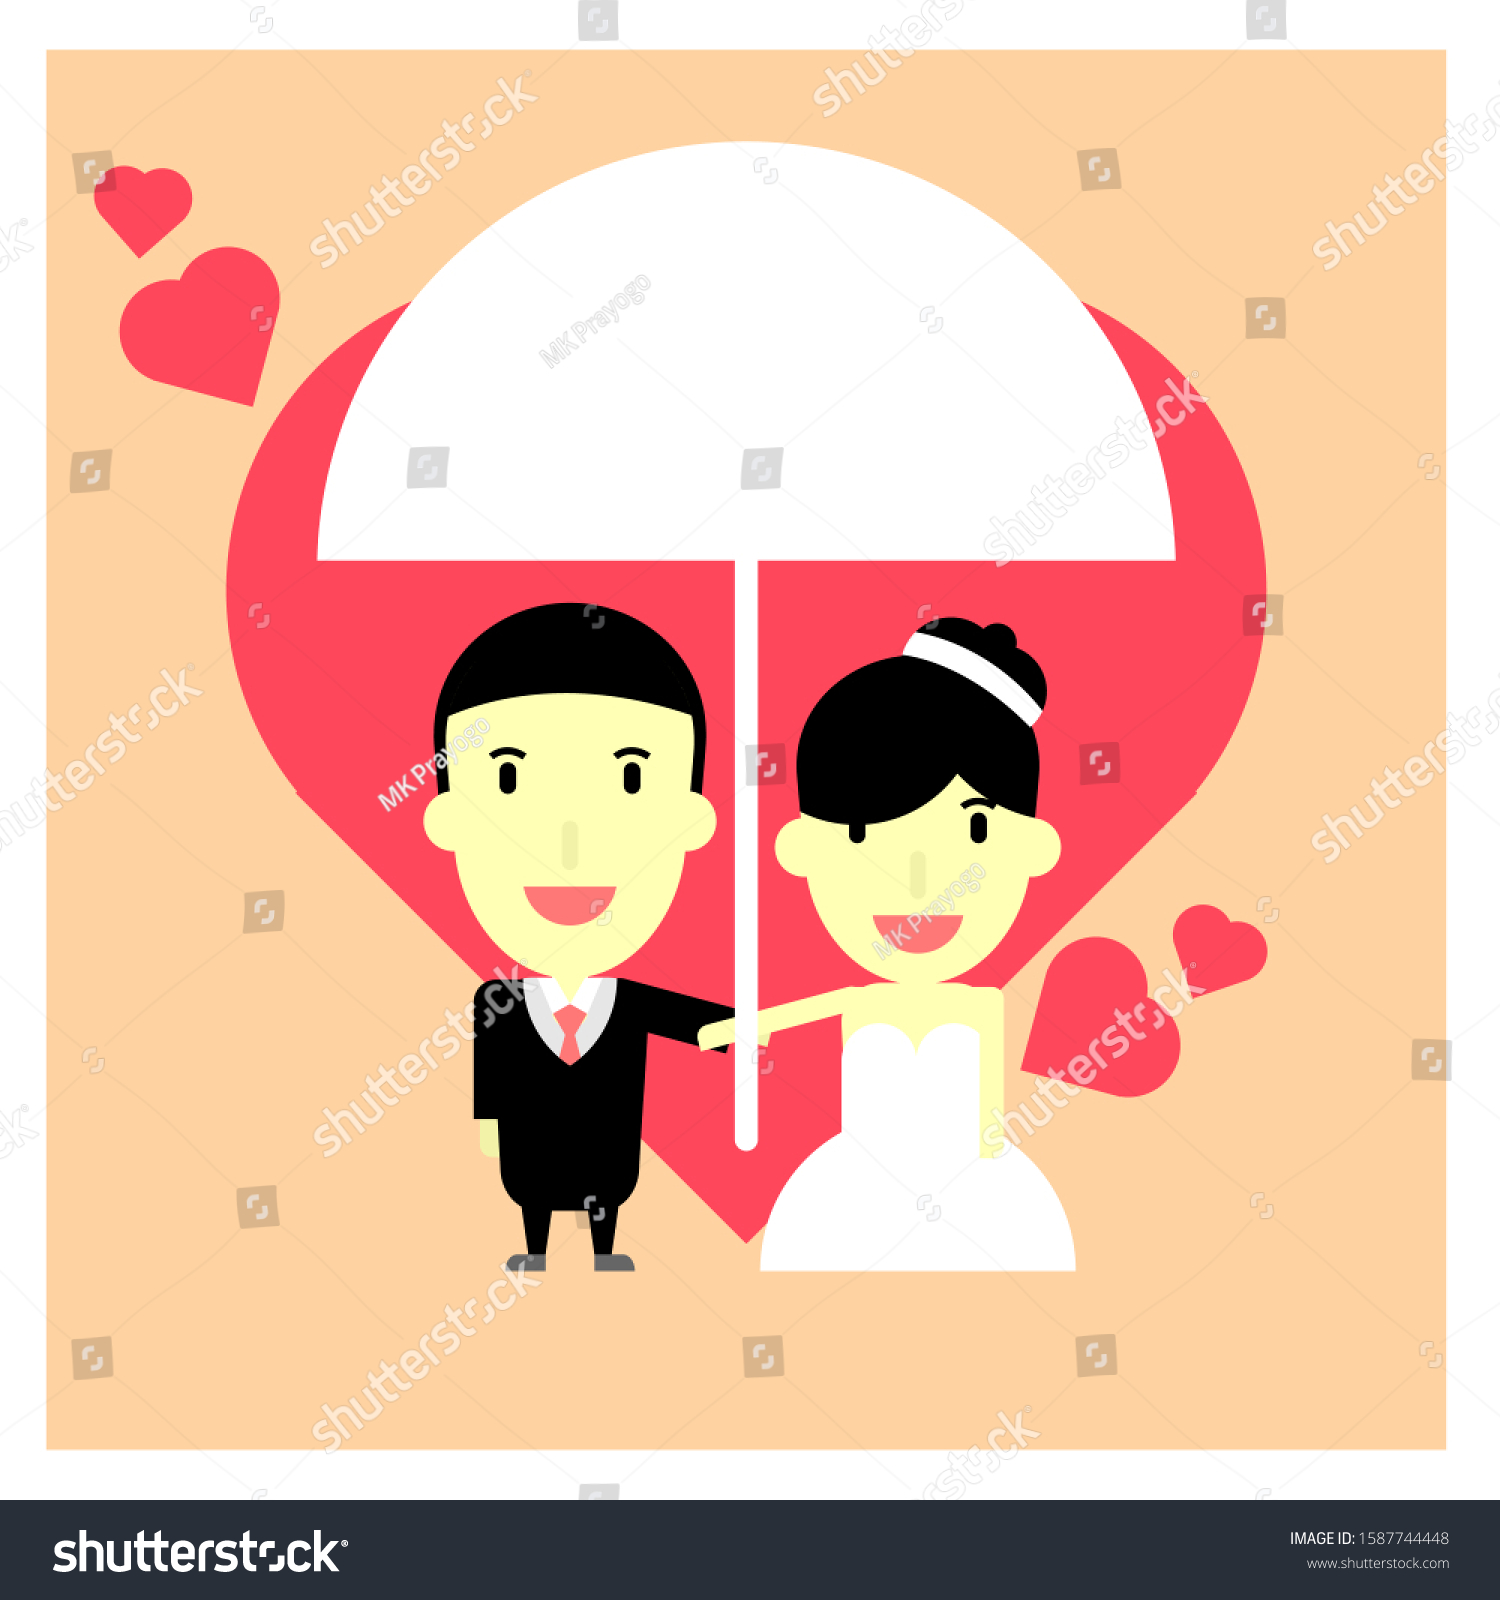 Cute Character Wedding Cartoon Married Vector Stock Vector Royalty Free 1587744448